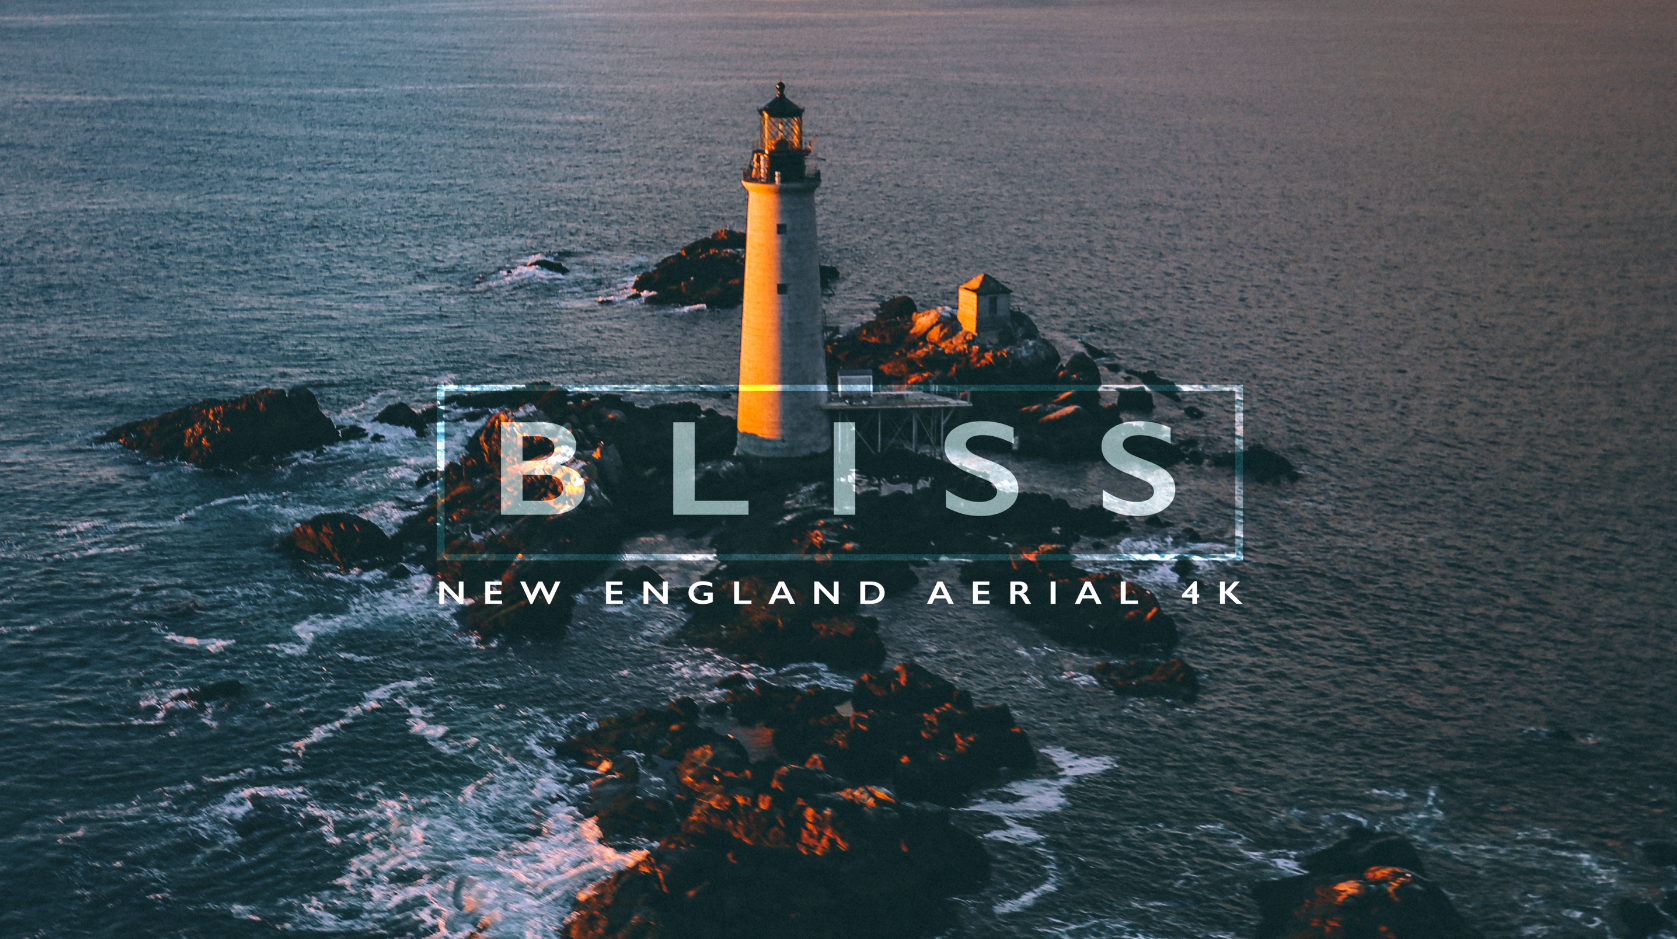 What Massachusetts's lighthouses look like from a helicopter in the fall - Boston.comJack Bushell, Jordan Kines, Diego Rosende, and Nick Vigue are now juniors at Emerson College and have produced yet another stunning 4K-resolution film of local landmarks from the perspective of a helicopter fluttering above the Boston-area coastline.November 22, 2016